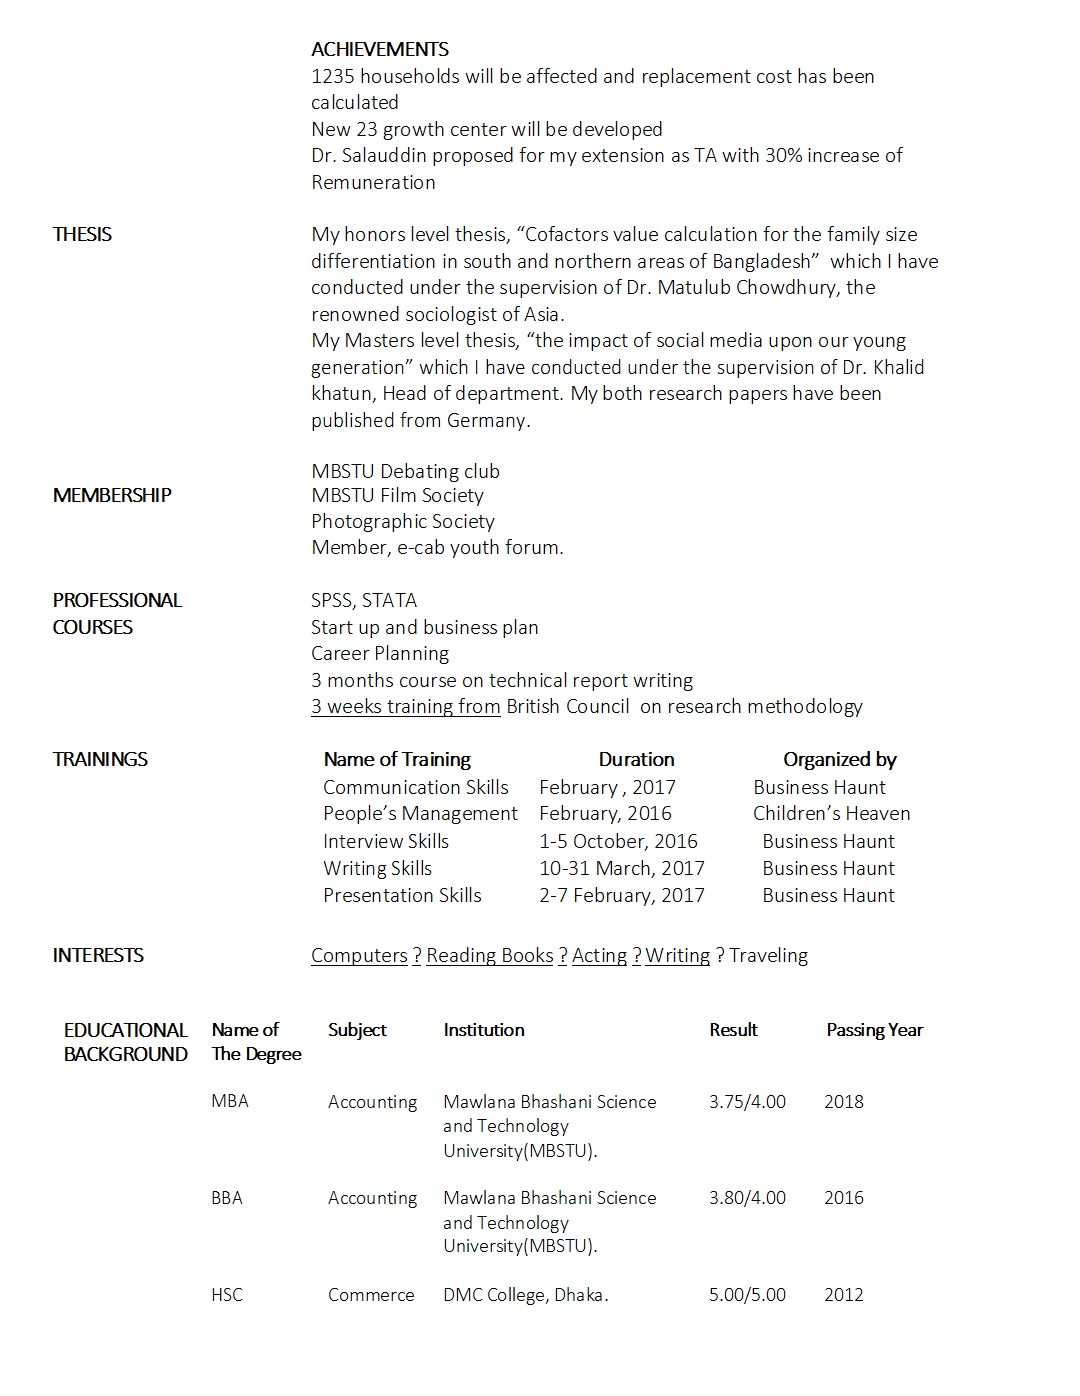 fresher cv sample business haunt resume examples for freshers objective words best middle Resume Resume Examples For Freshers